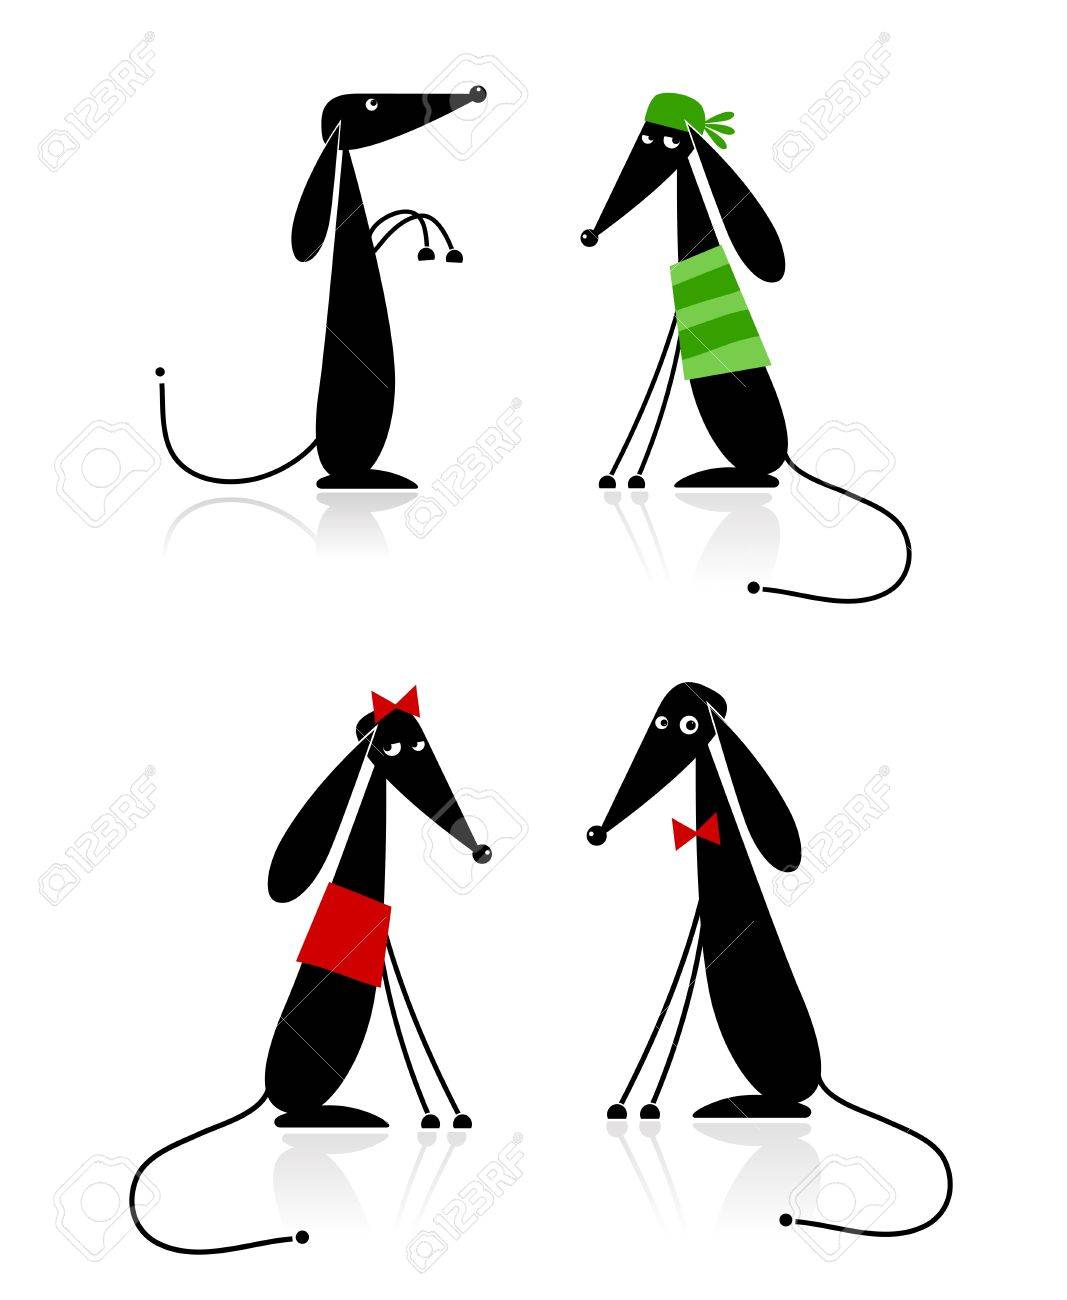 Funny black dogs silhouette, collection for your design Stock Vector - 8362448